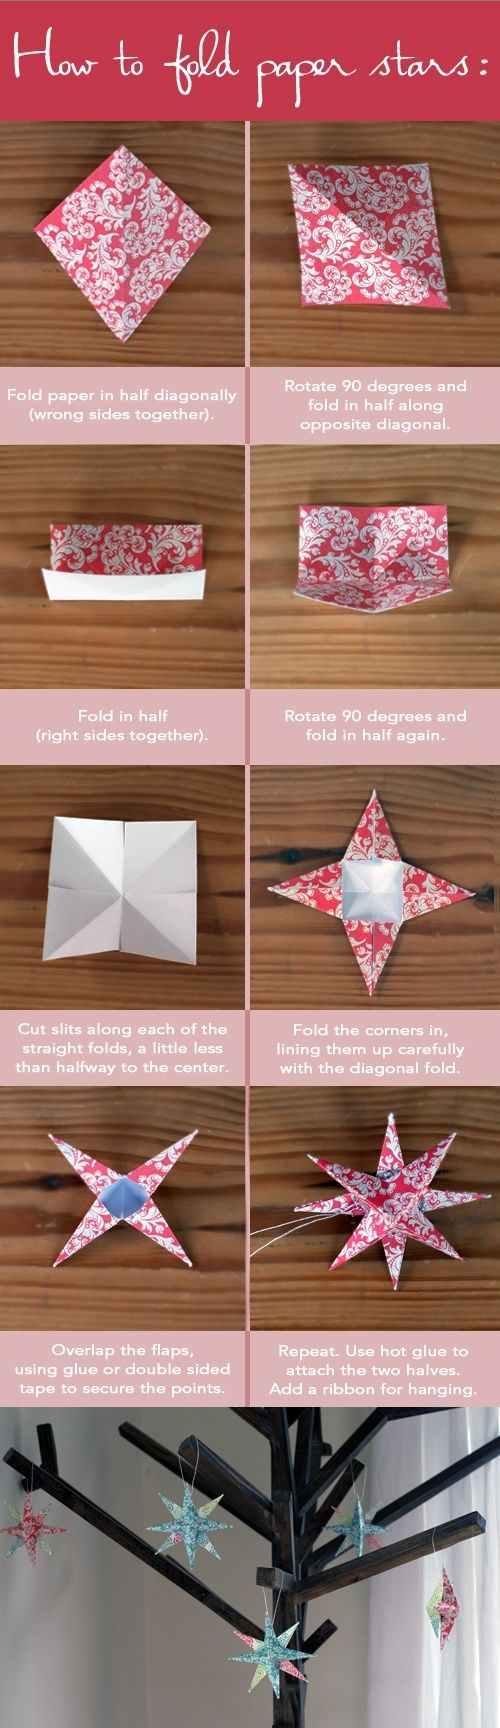 #howto #paper #star #tutorial #stepbystep #origami